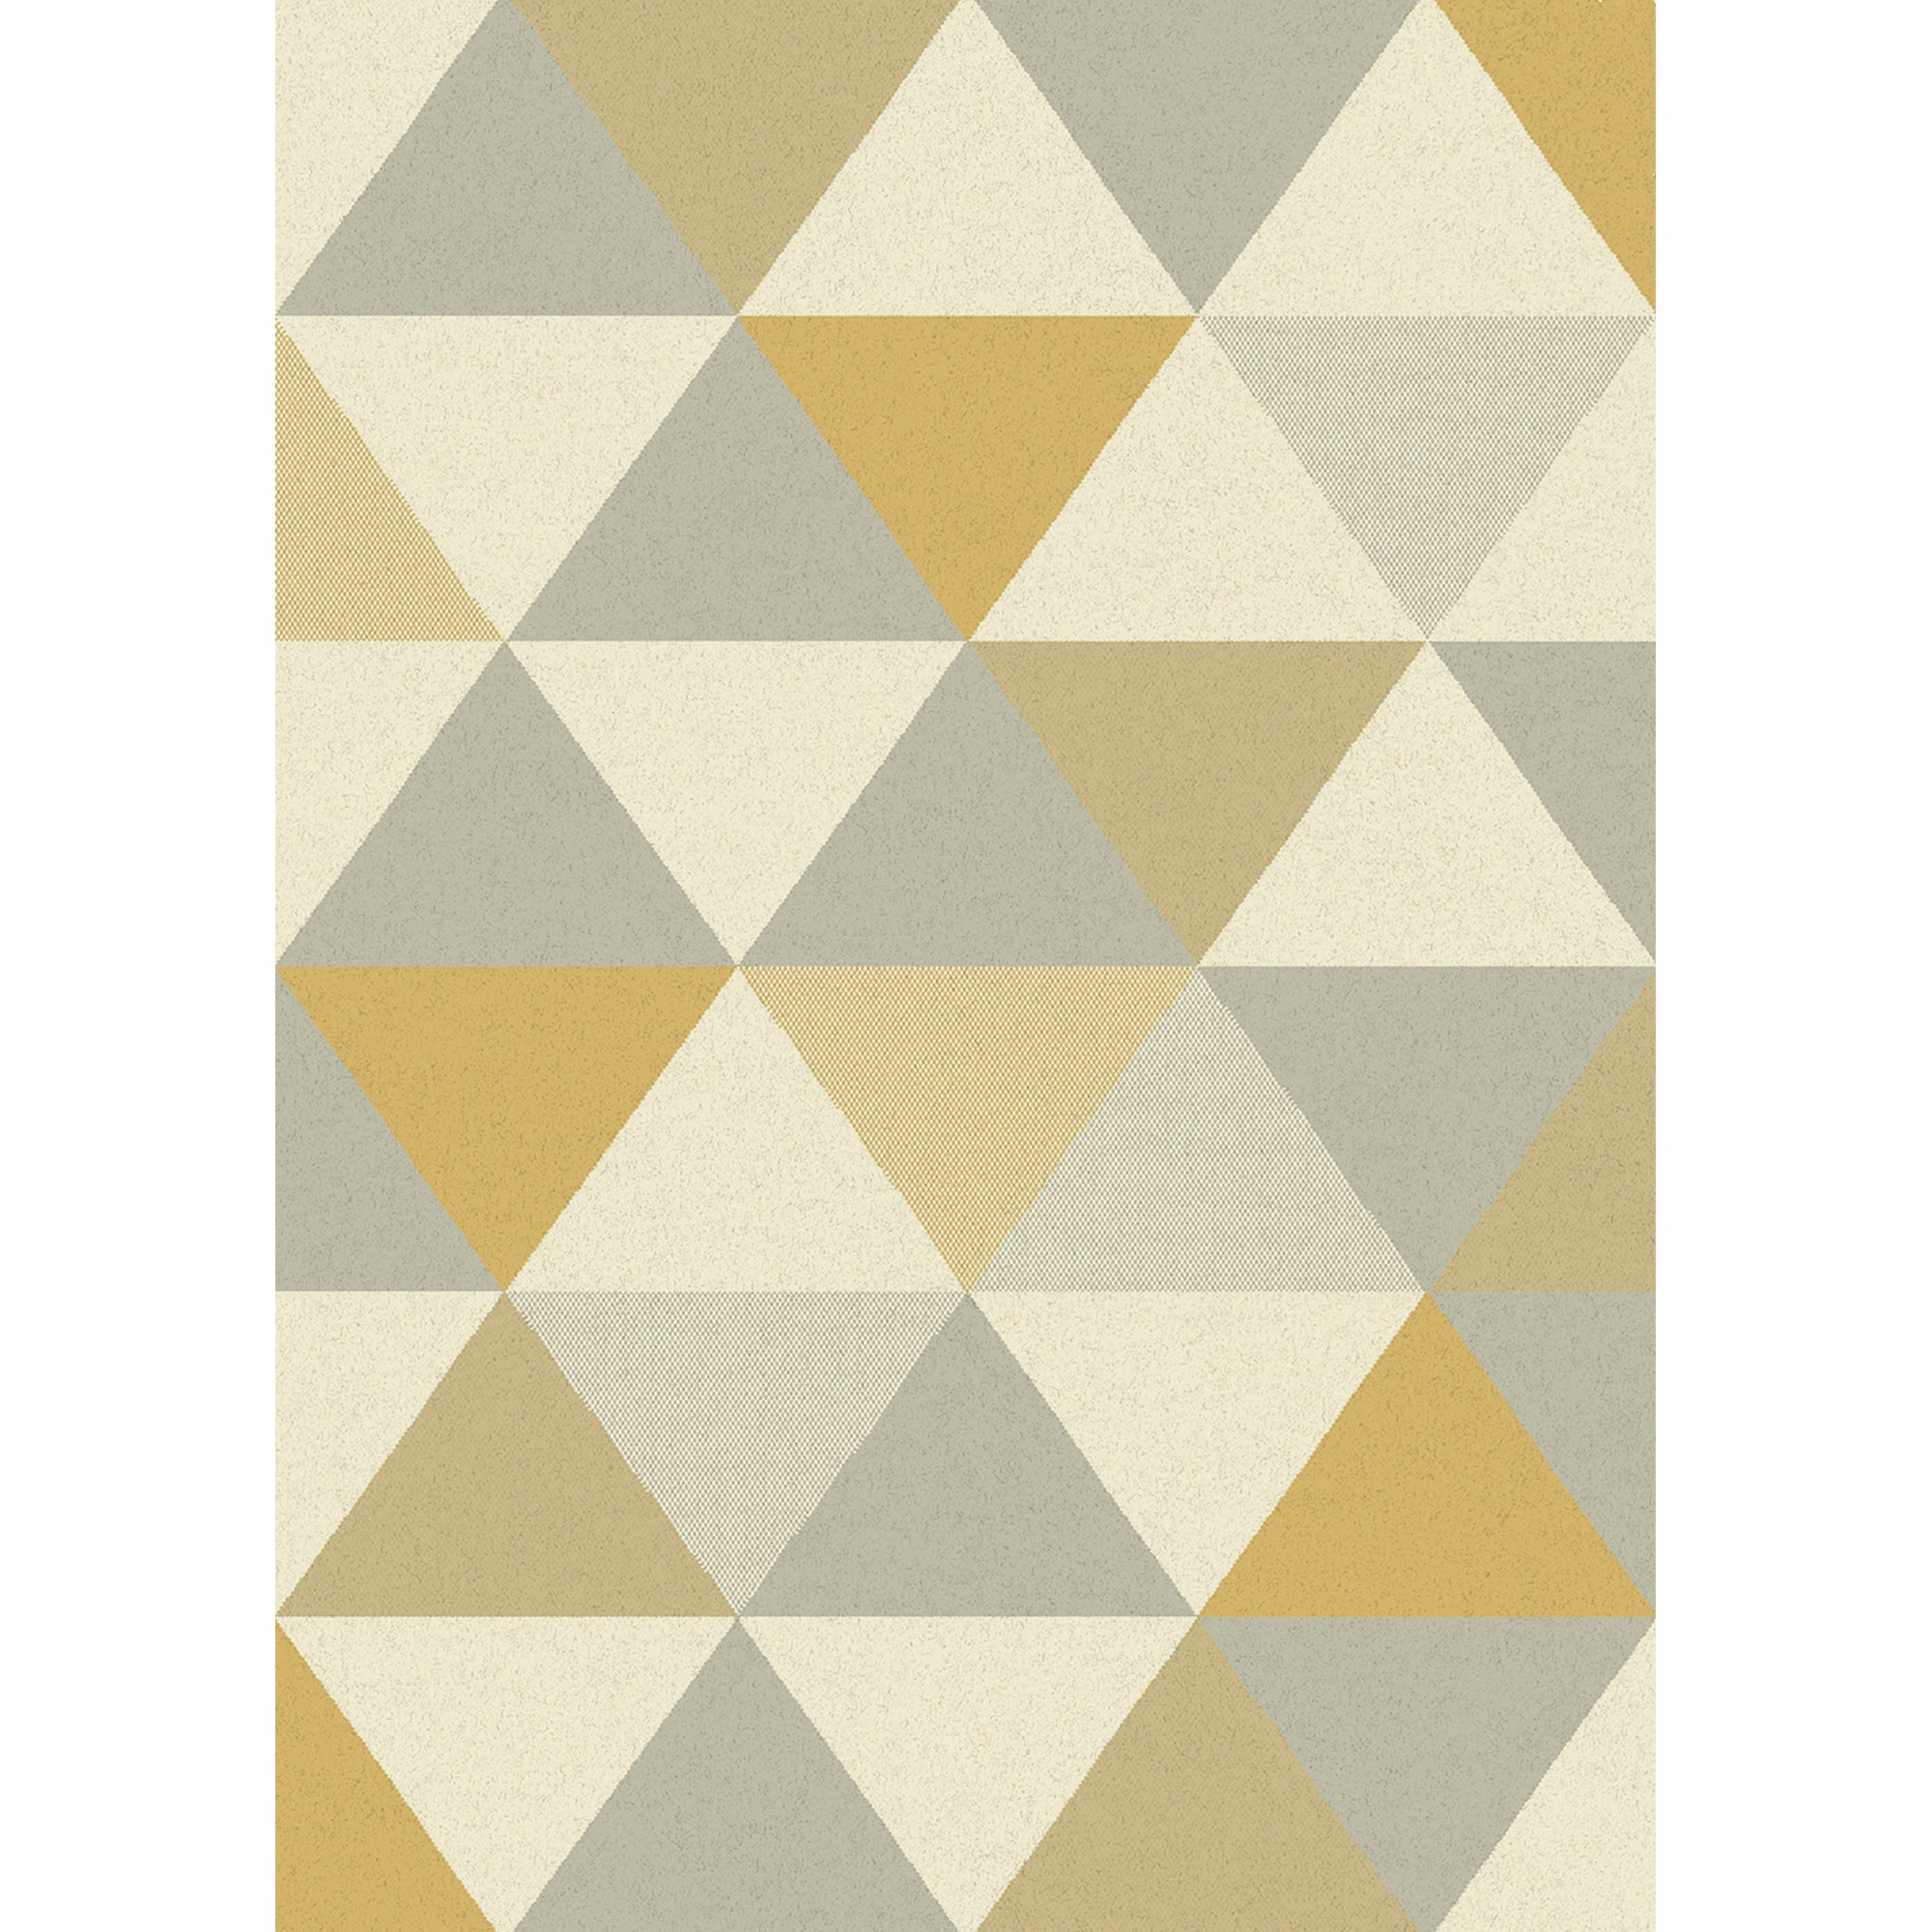 Focus Triangles Rugs FC03 in Ochre